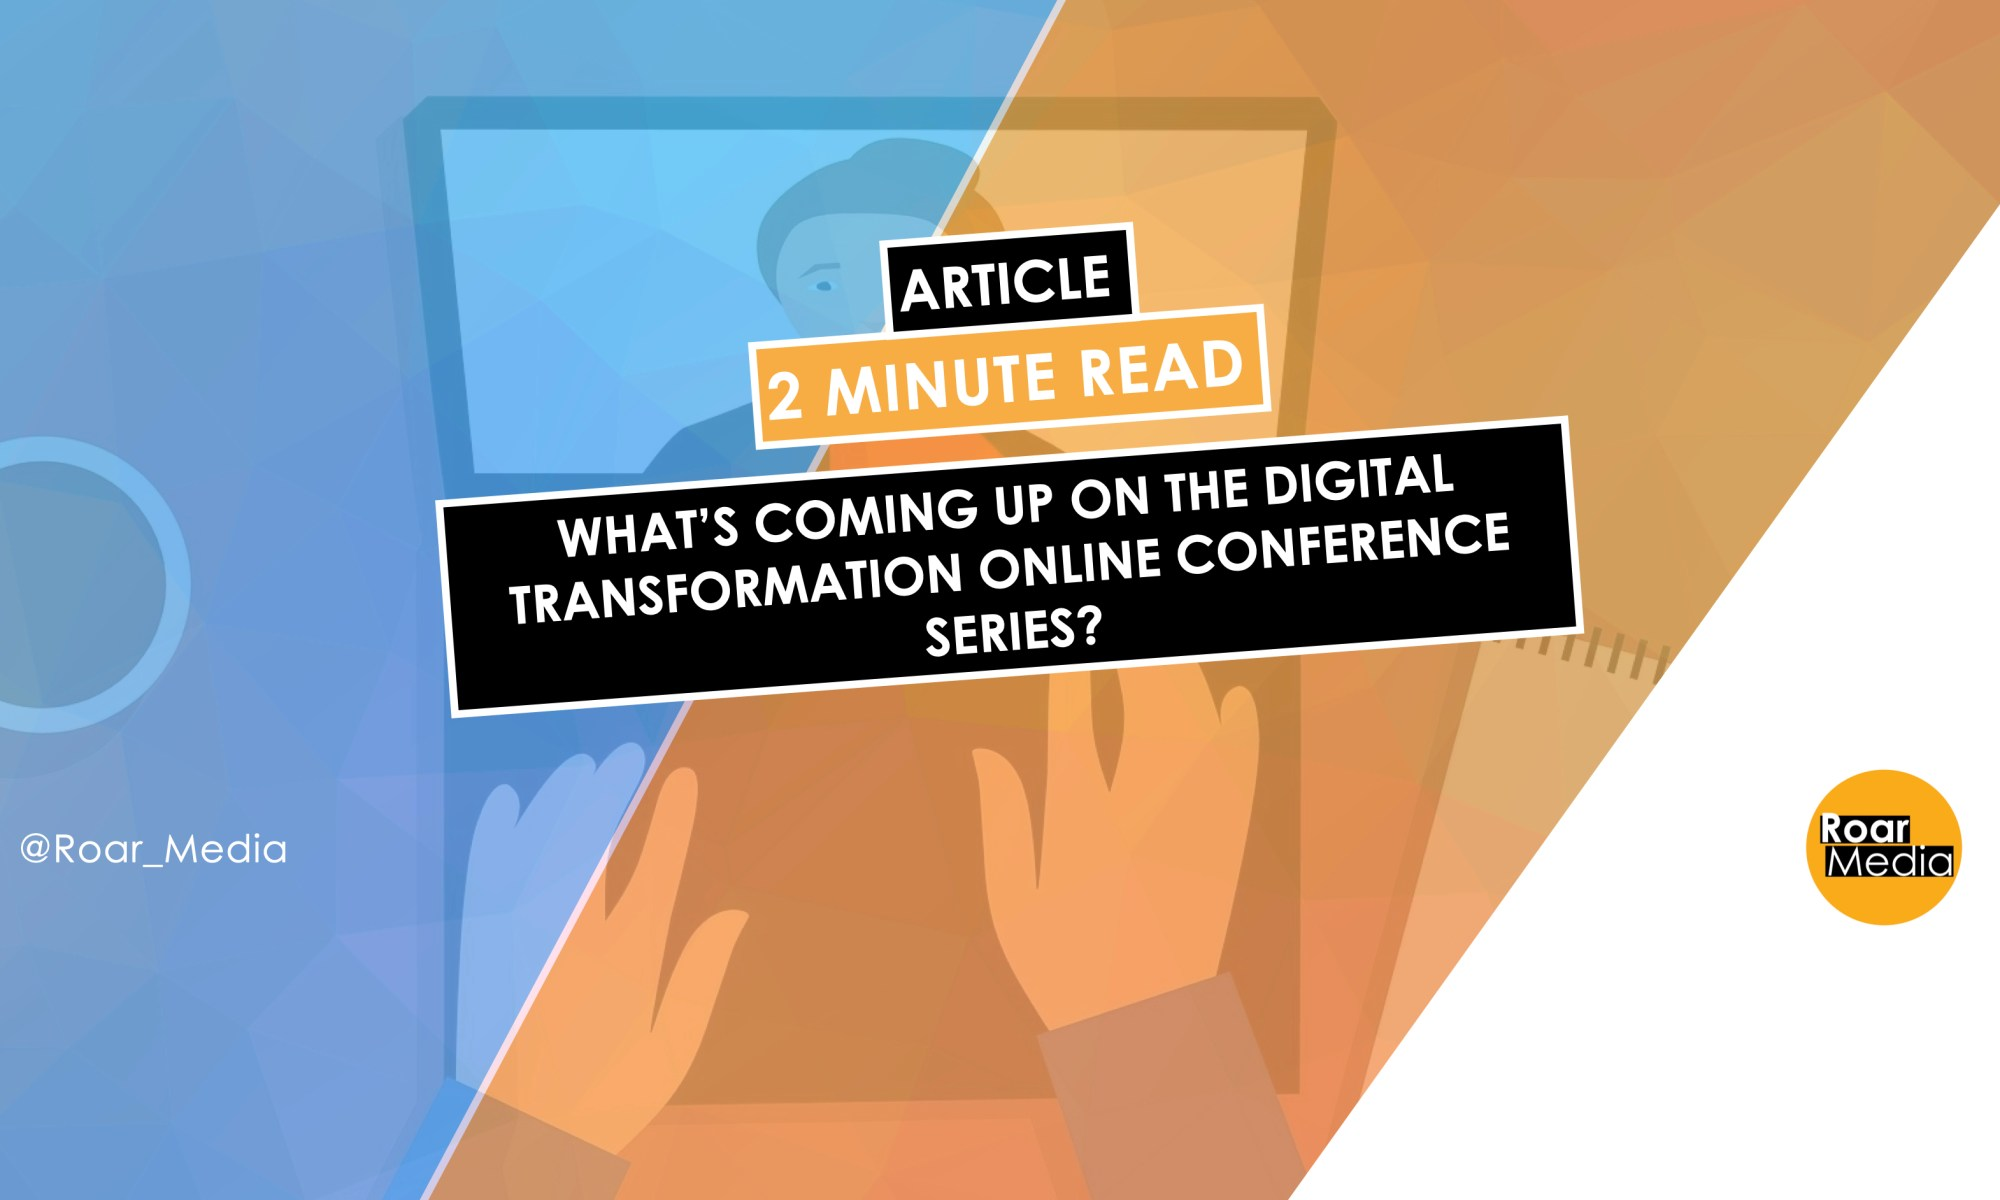 What's Coming Up on The Digital Transformation Conference Online Series